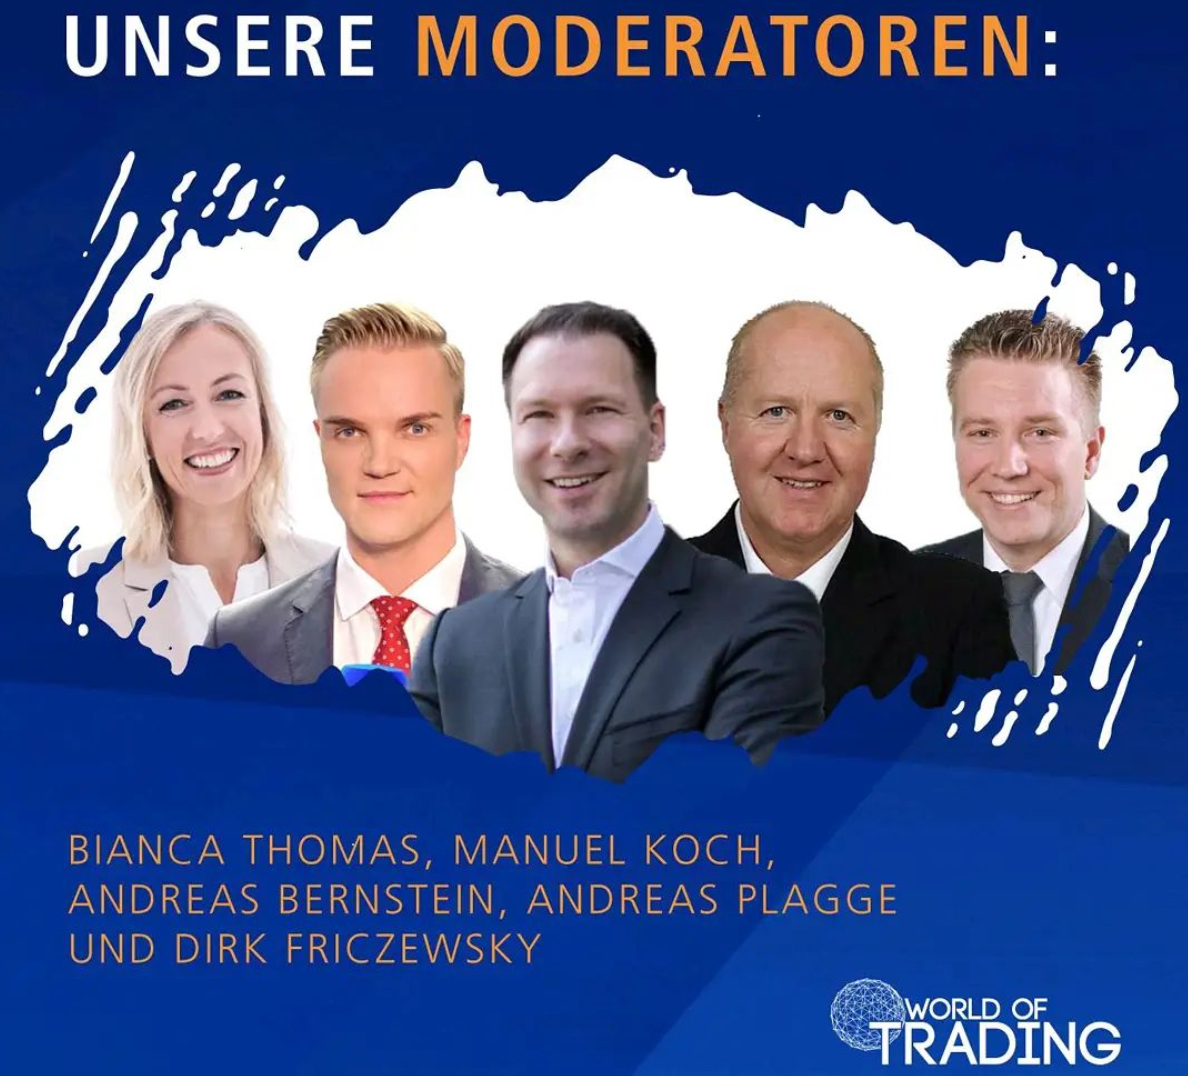 World of Trading am 08.10.2021